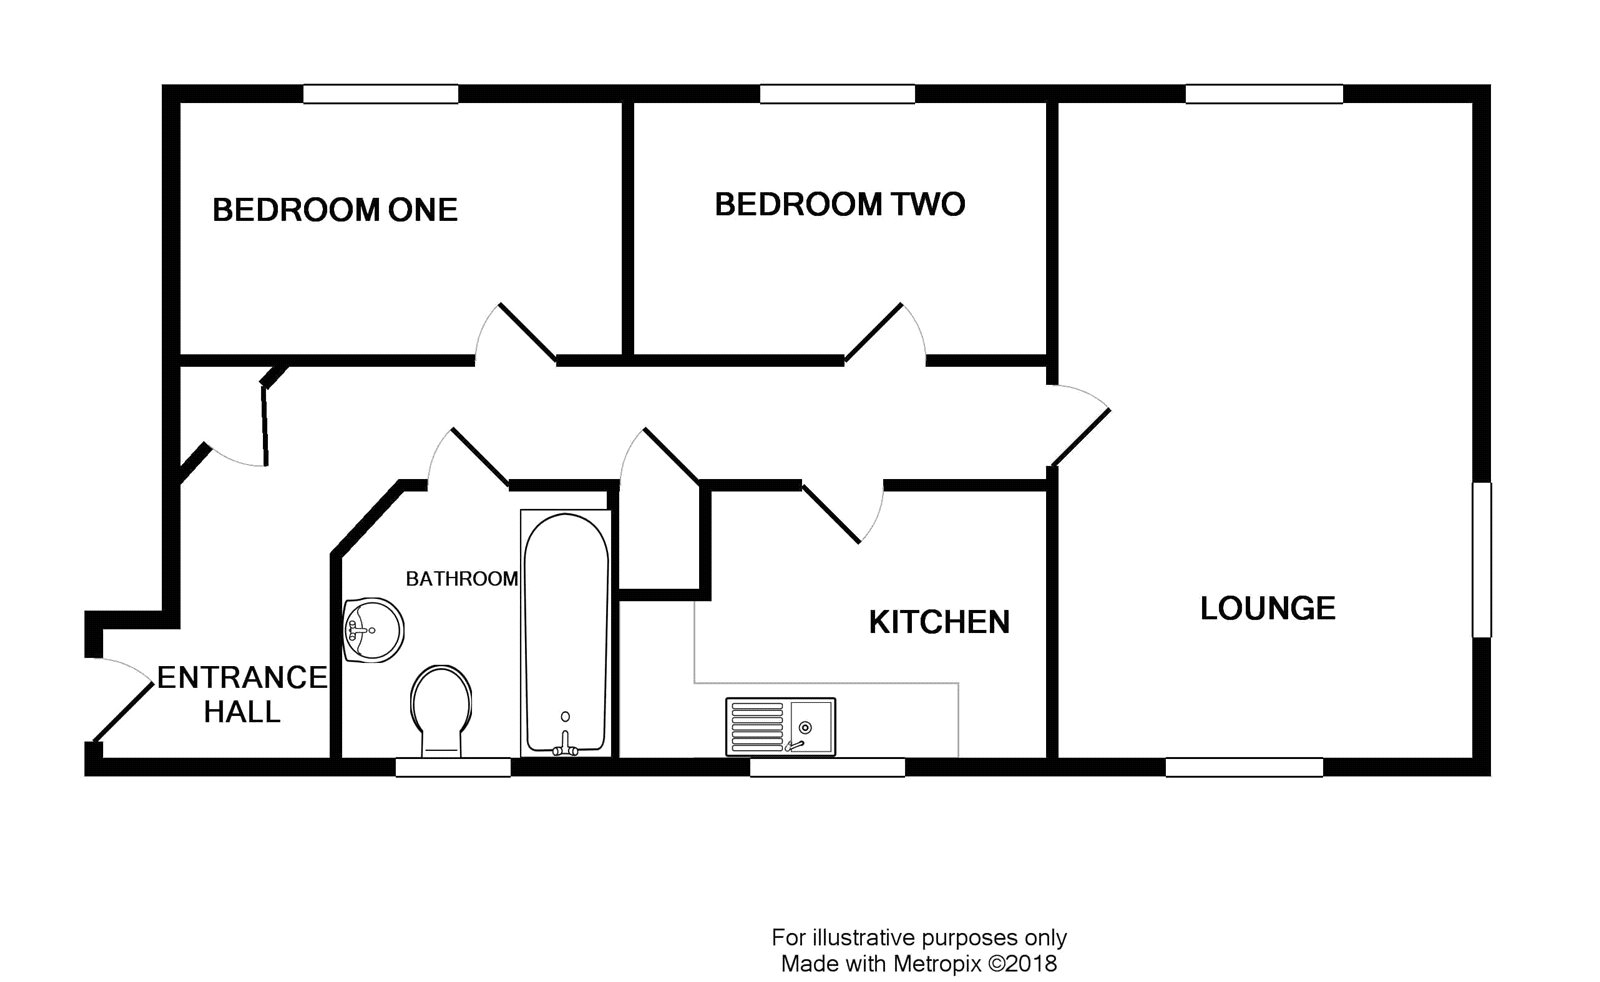 cj hole bradley stoke 2 bedroom flat for sale in the